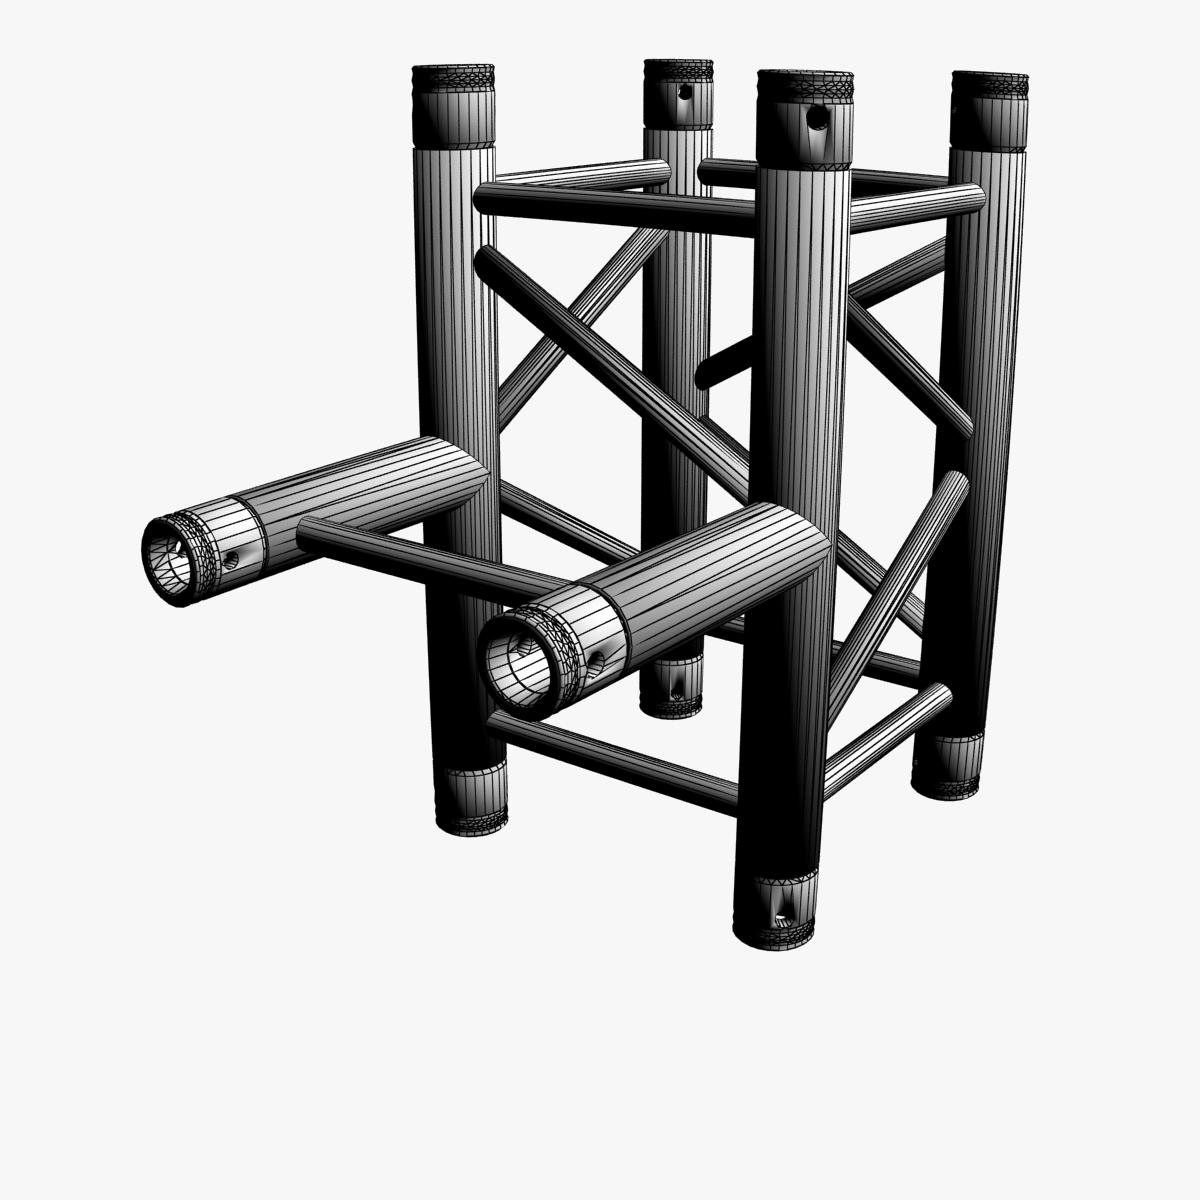 square truss standard (collection 24 modular) 3d model 3ds max dxf fbx c4d dae  texture obj 216345